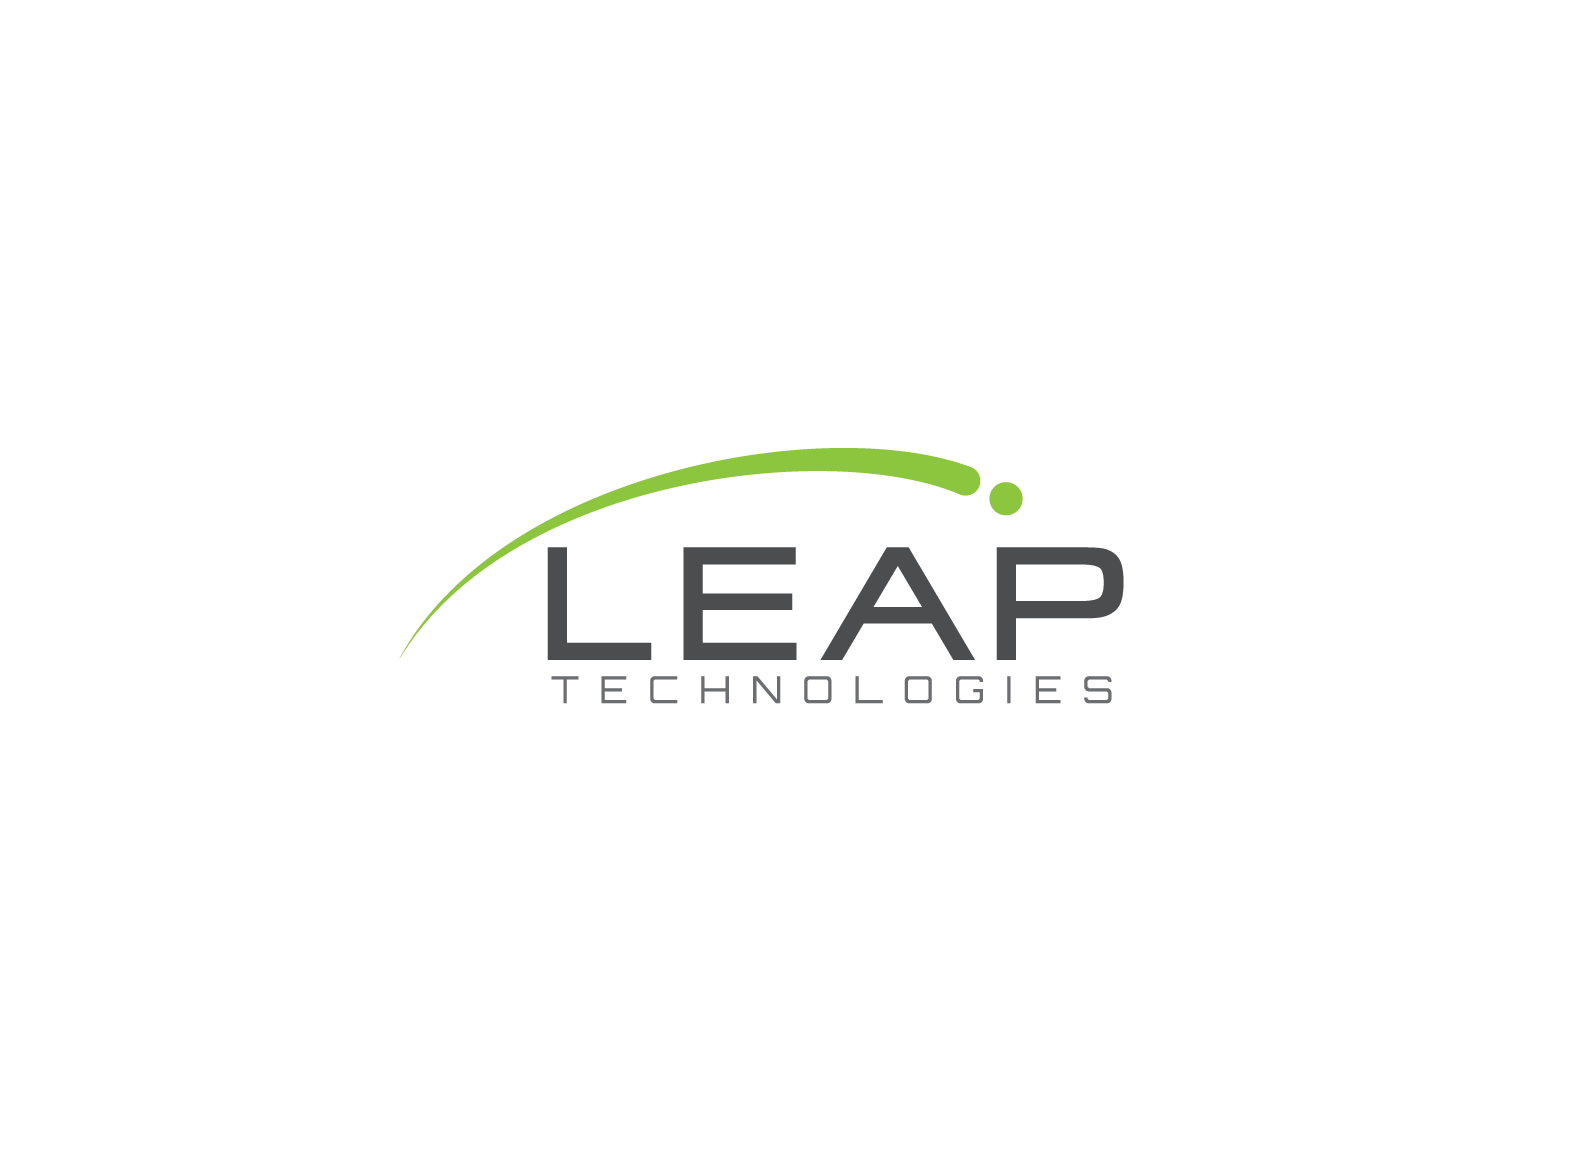 New logo wanted for LEAP Technologies